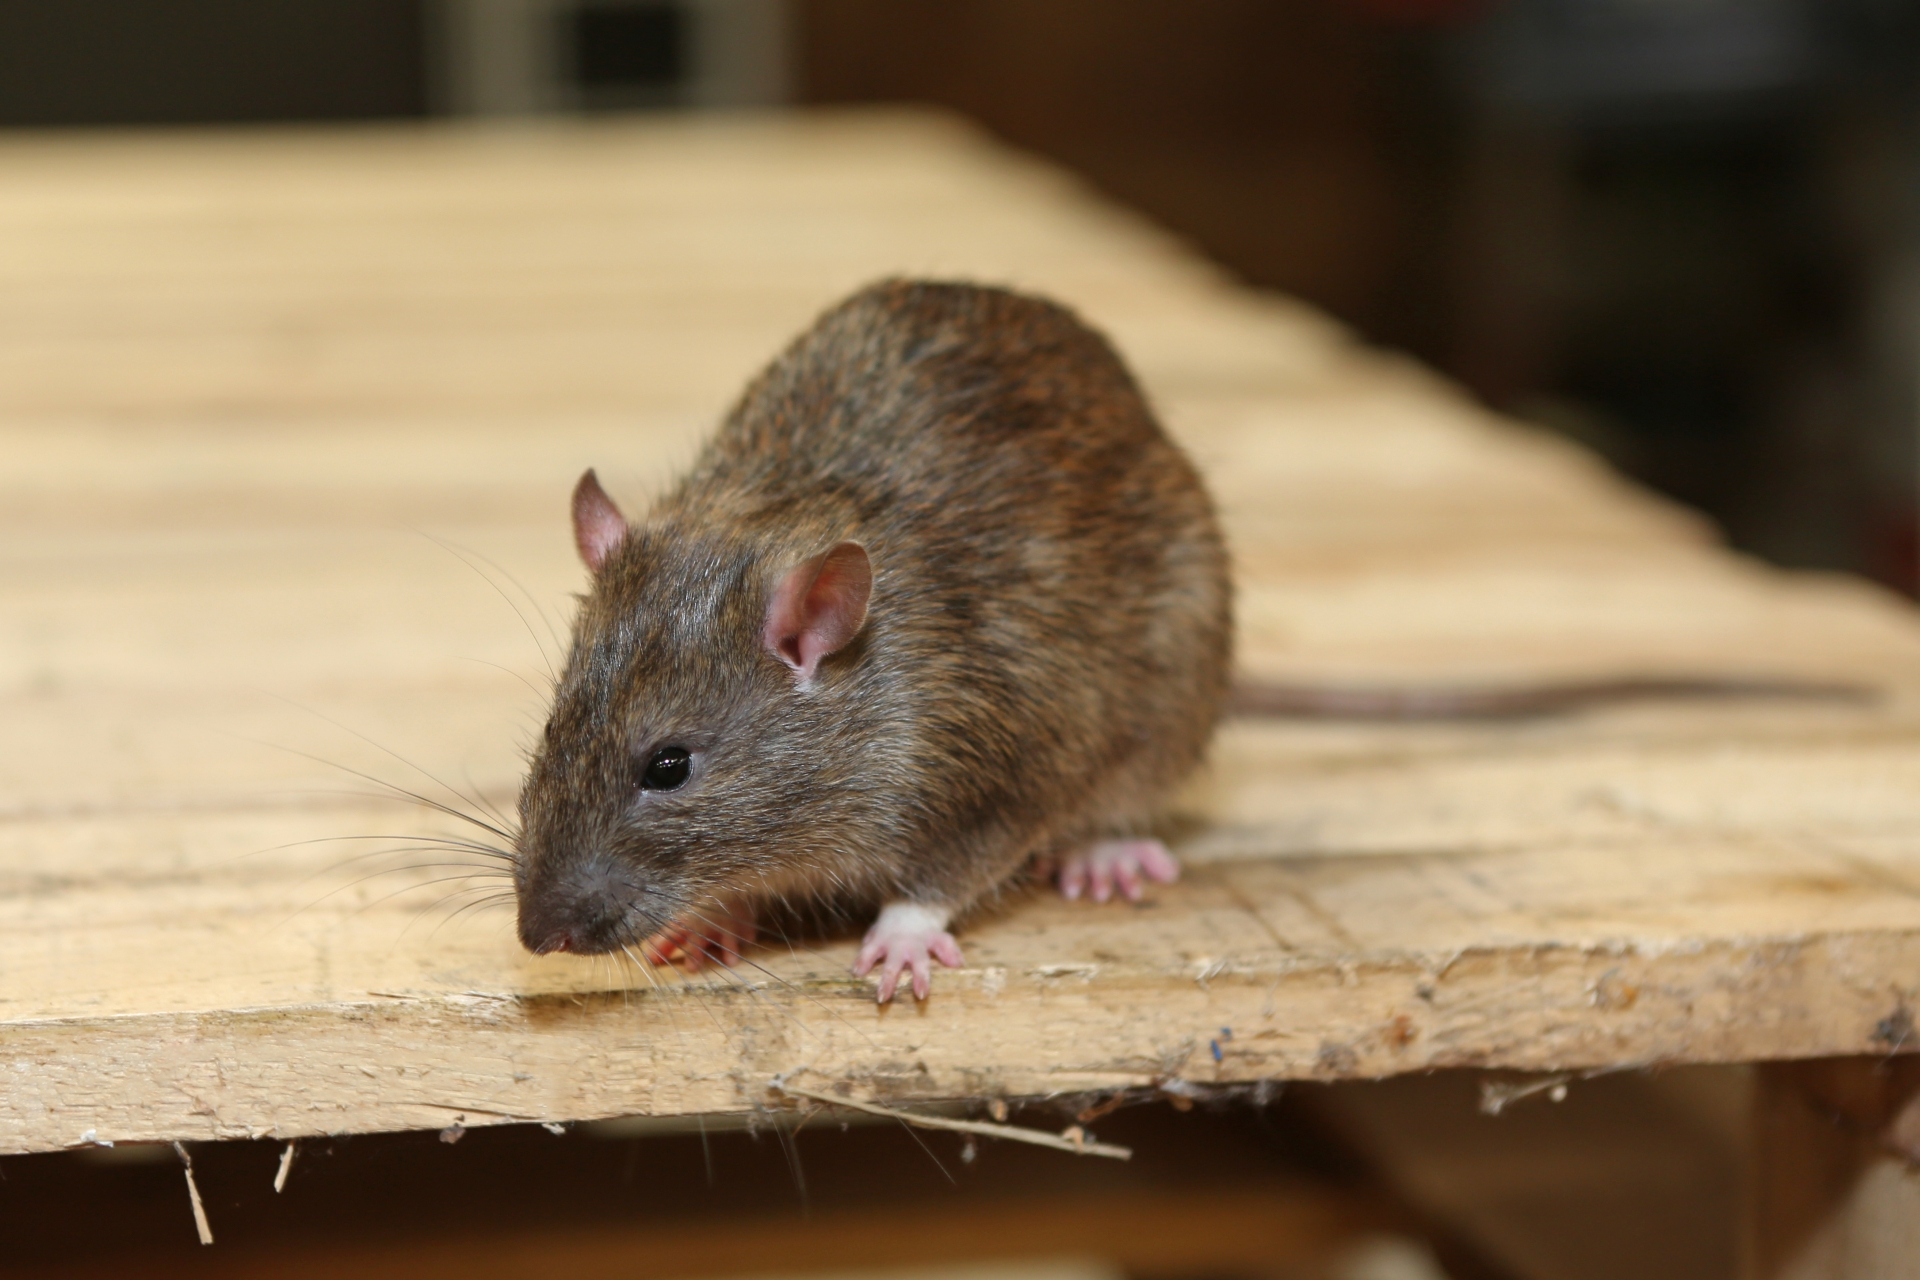 Rat Infestation, Pest Control in Clapton, E5. Call Now 020 8166 9746